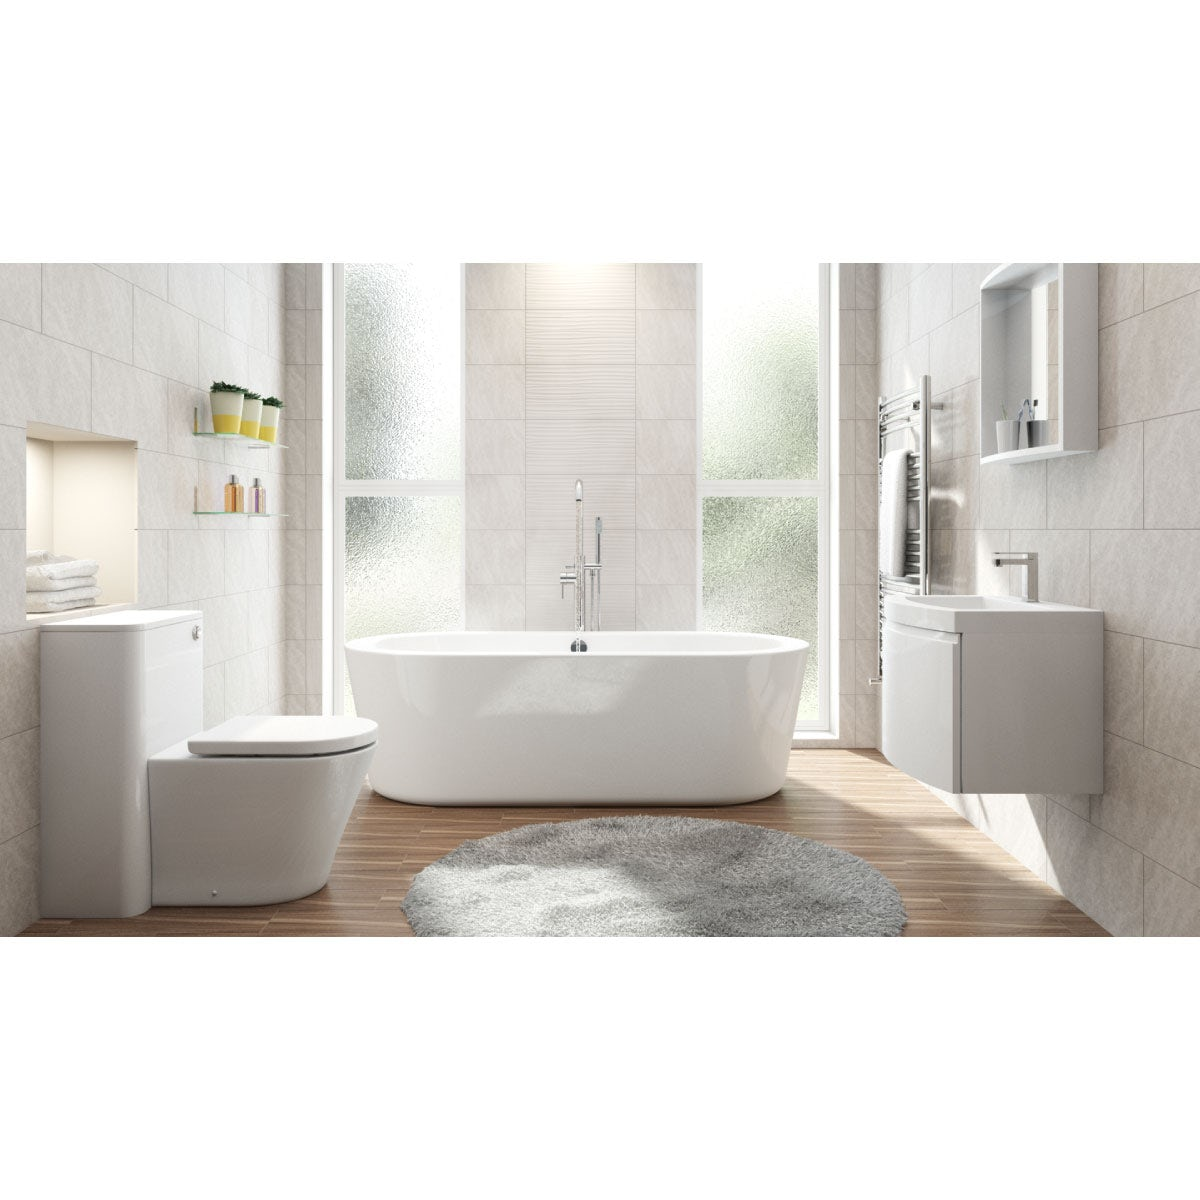 Mode Harrison furniture suite with freestanding bath 1770 x 800 and mirror